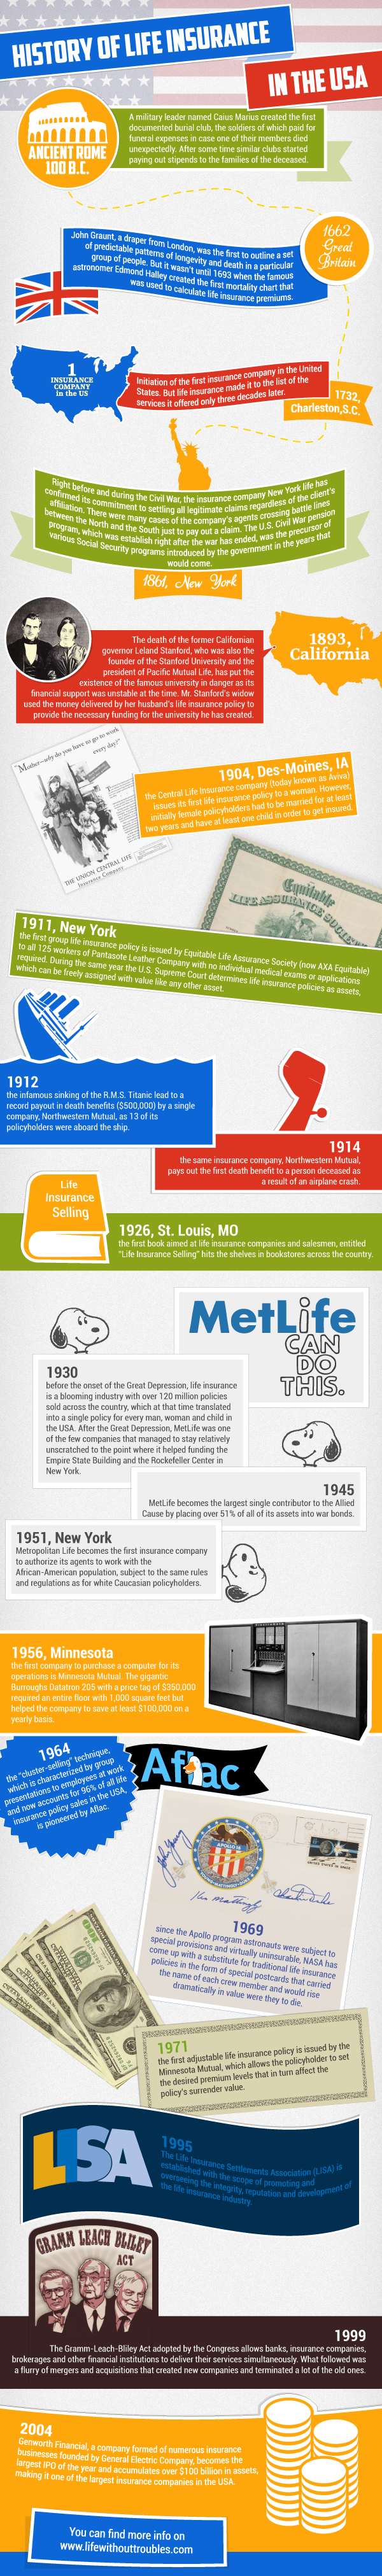 History of Life Insurance